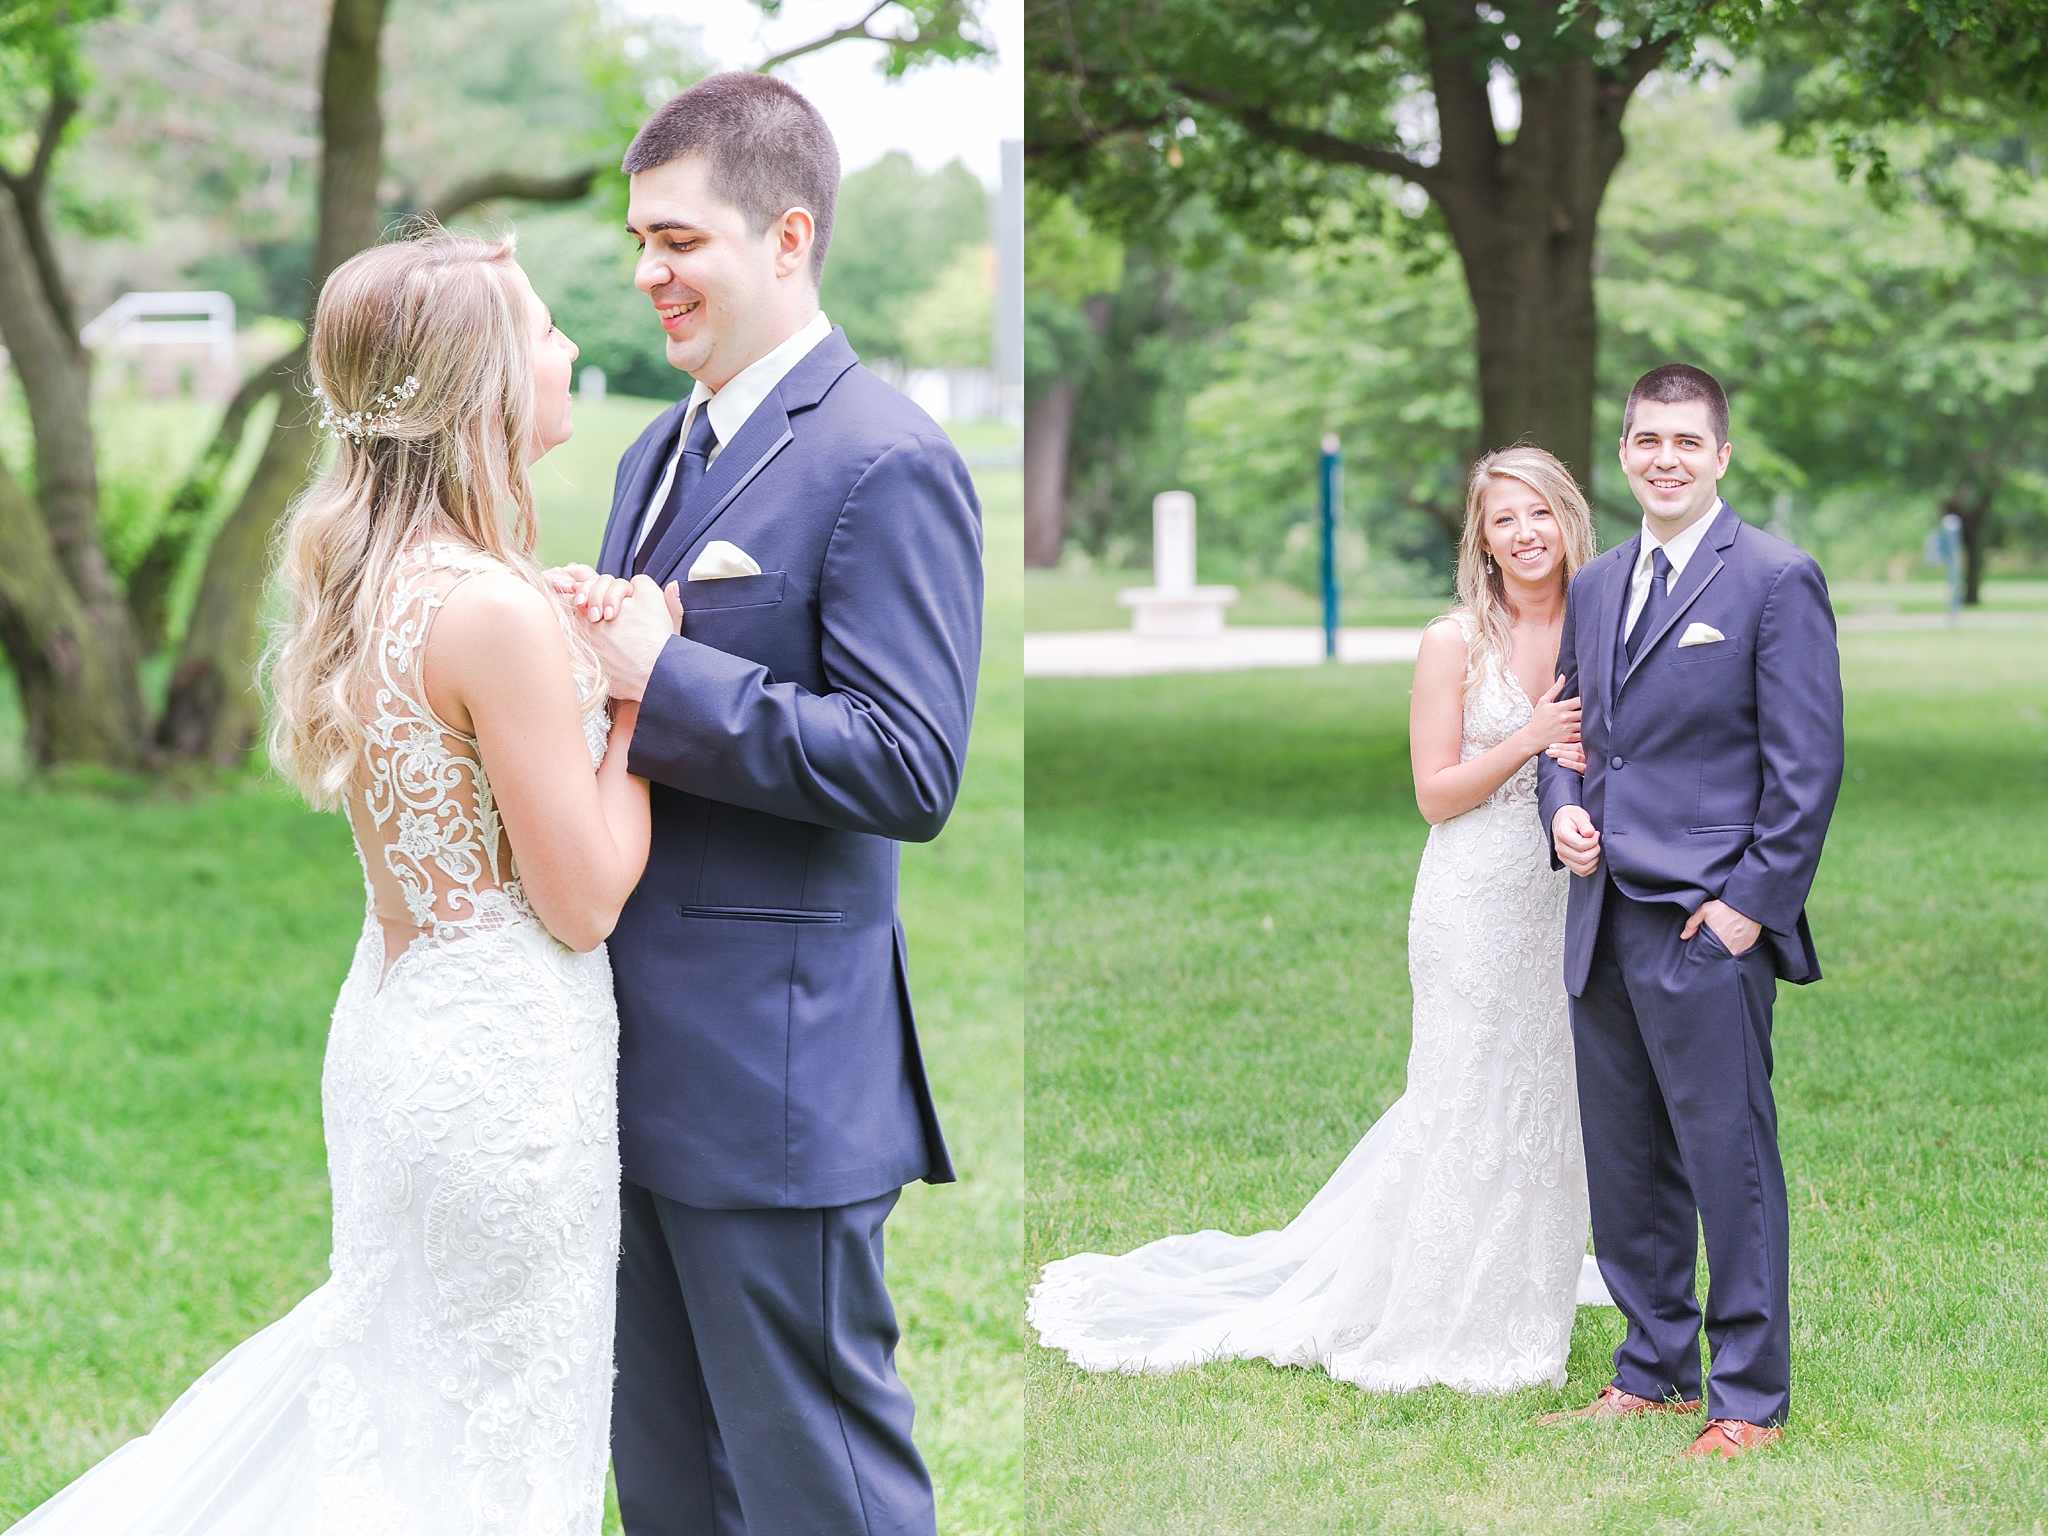 candid-romantic-wedding-photos-at-the-h-hotel-in-midland-michigan-by-courtney-carolyn-photography_0040.jpg